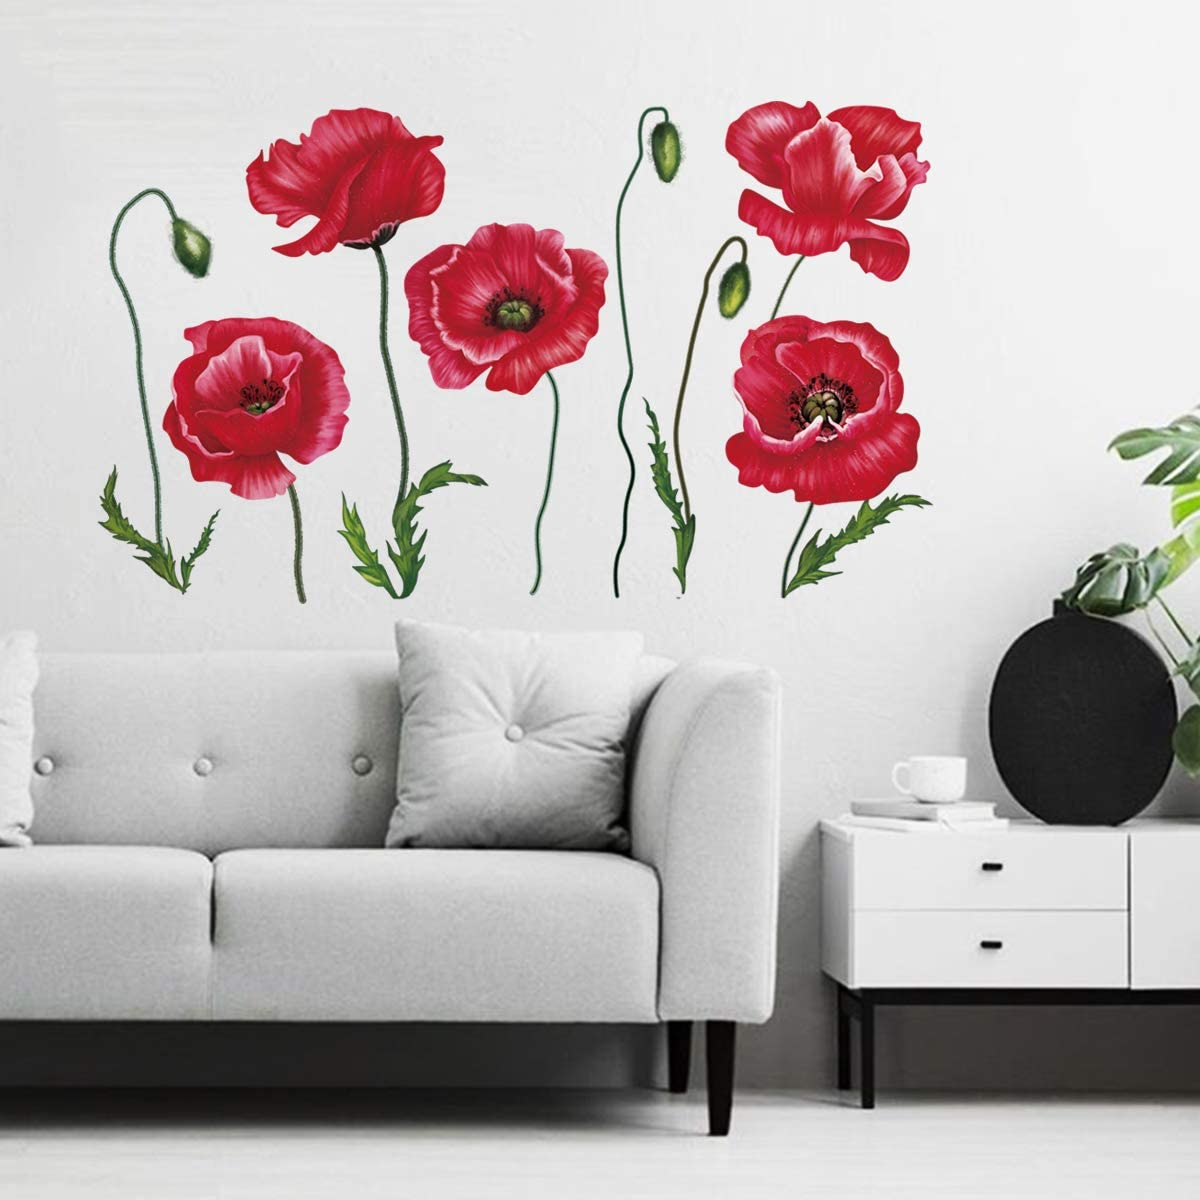 Decalmile Red Poppy Flower Wall Decals Floral Wall Art Stickers Bedroom Living Room Tv Background Home Decor Amazon Ca Home Kitchen